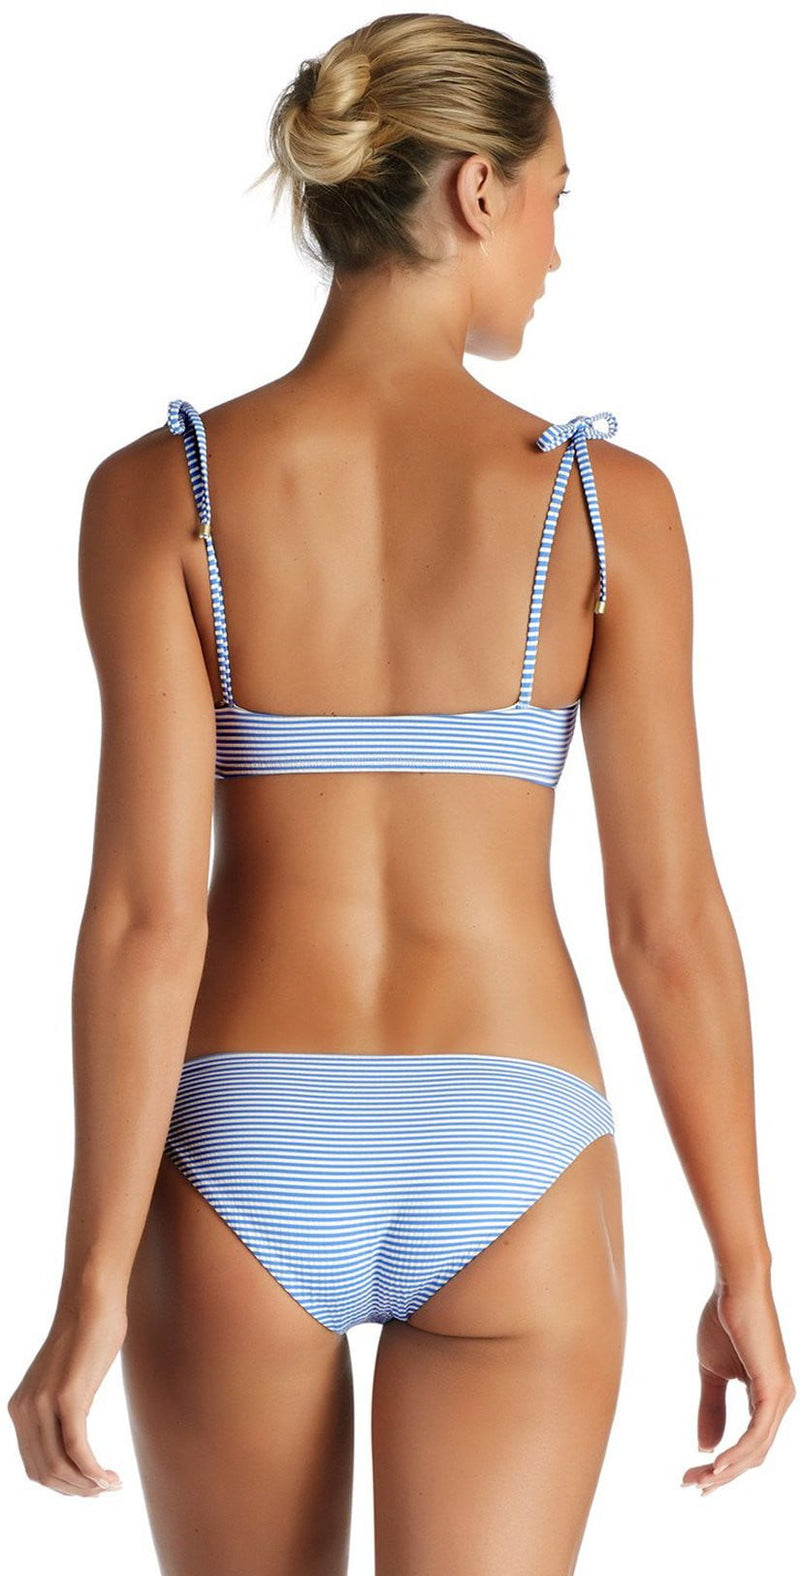 Vitamin A Zuma Bralette Bikini Top in Hamptons Stripe 86T HAM: